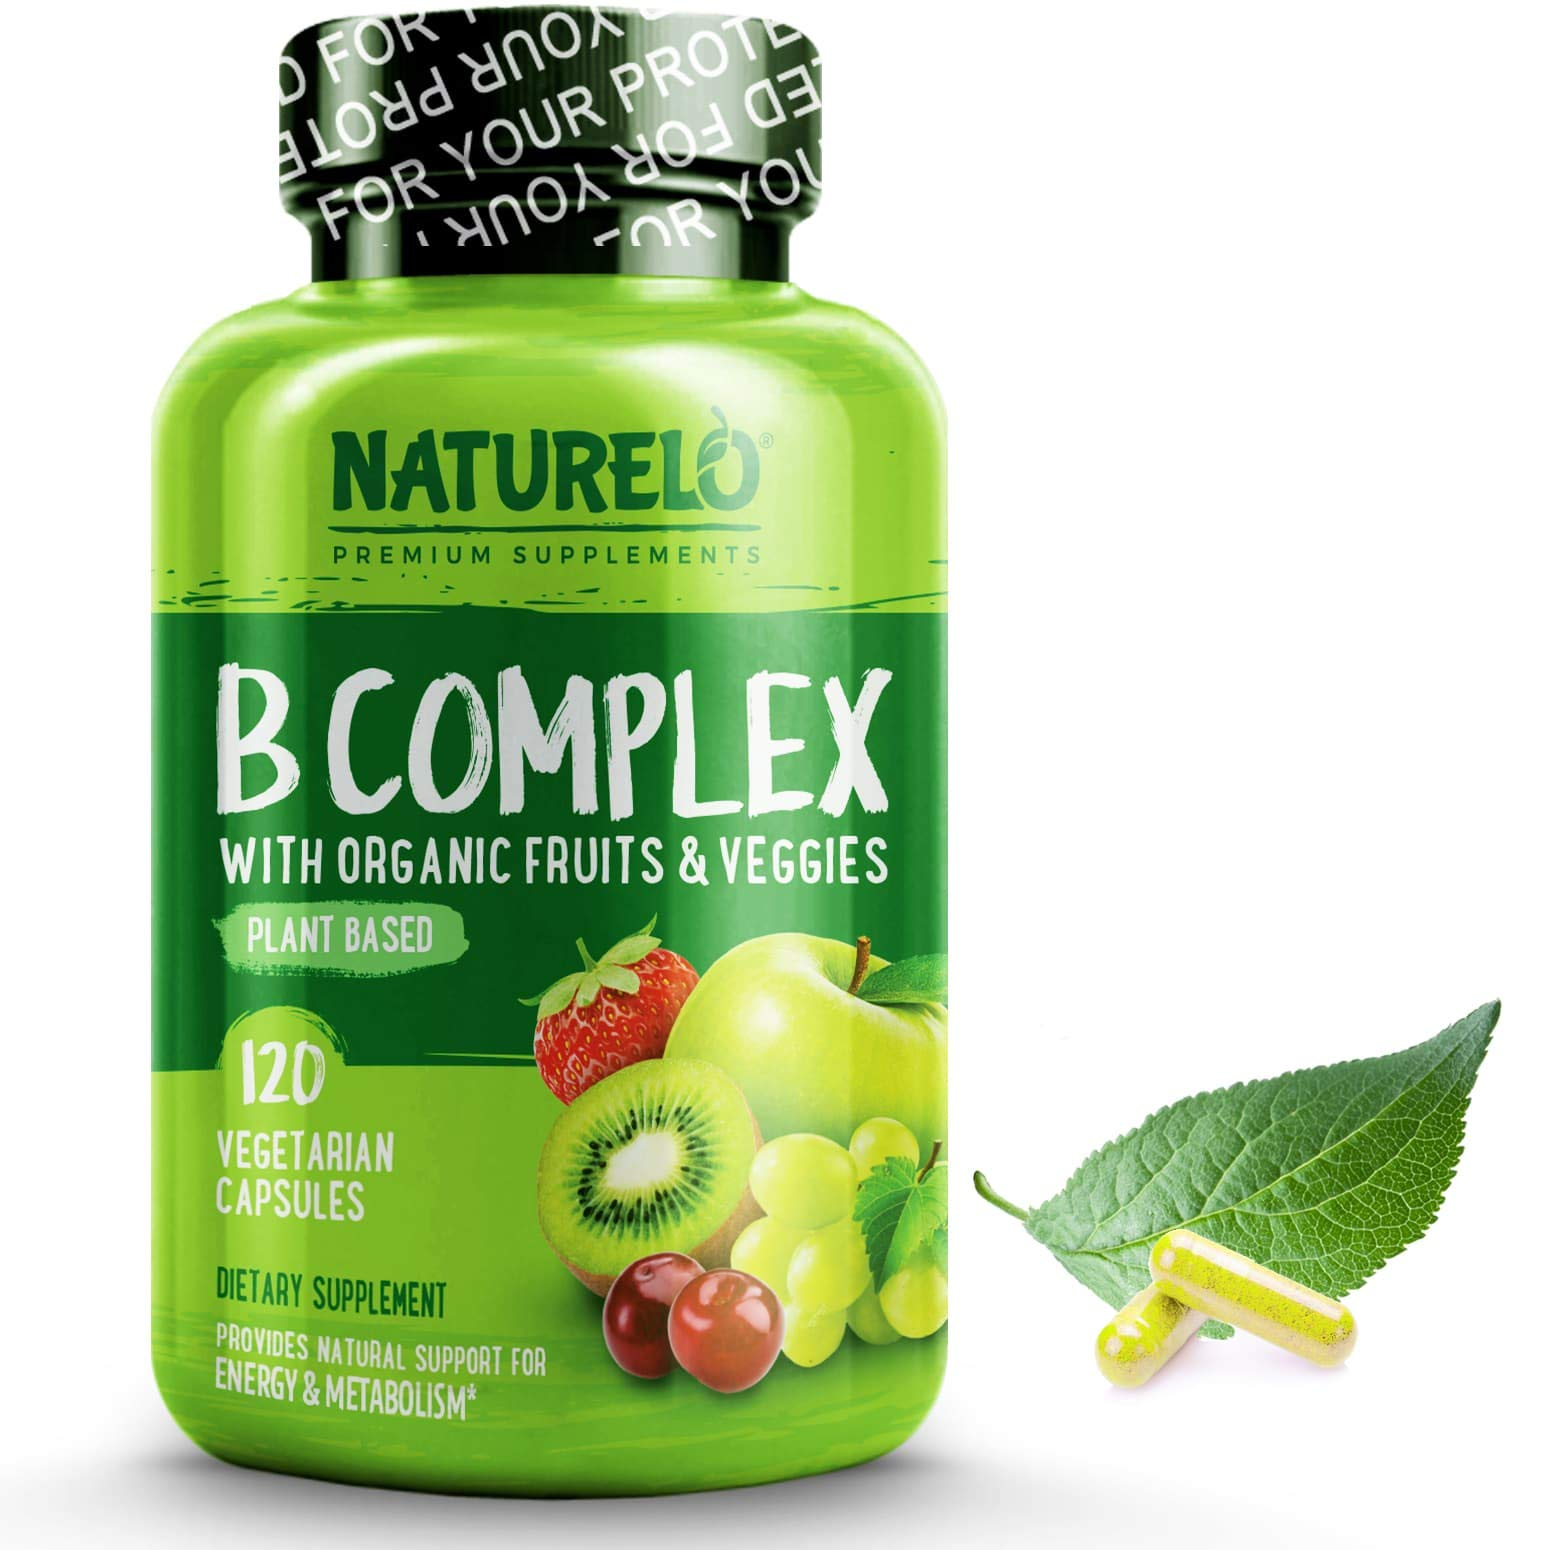 NATURELO B Complex - Whole Food - with Vitamin B6, Folate, B12, Biotin - Vegan - Vegetarian - Best Natural Supplement for Energy and Stress - High Potency - Non GMO - Gluten Free - 120 Capsules by NATURELO